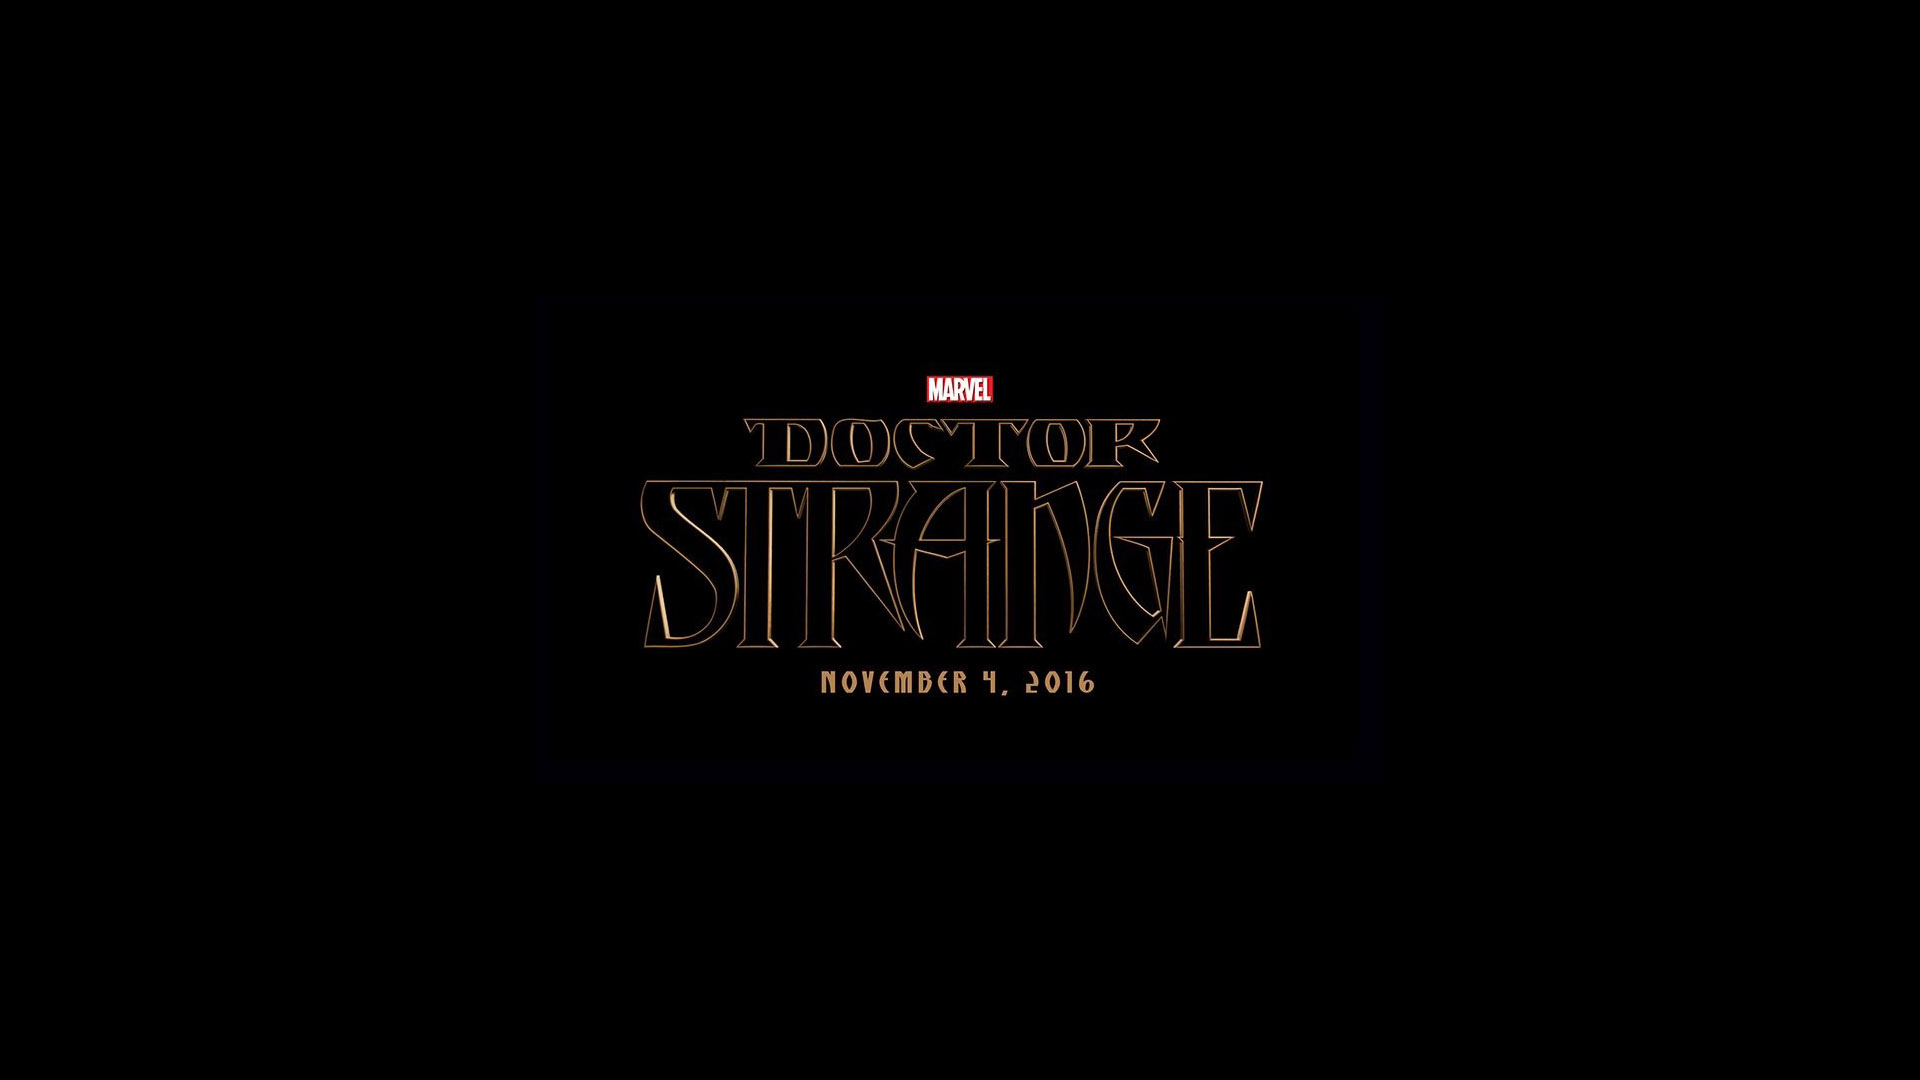 Black Panther Quotes Iphone Wallpaper Download 40 Hd Doctor Strange Movie Wallpapers For Free